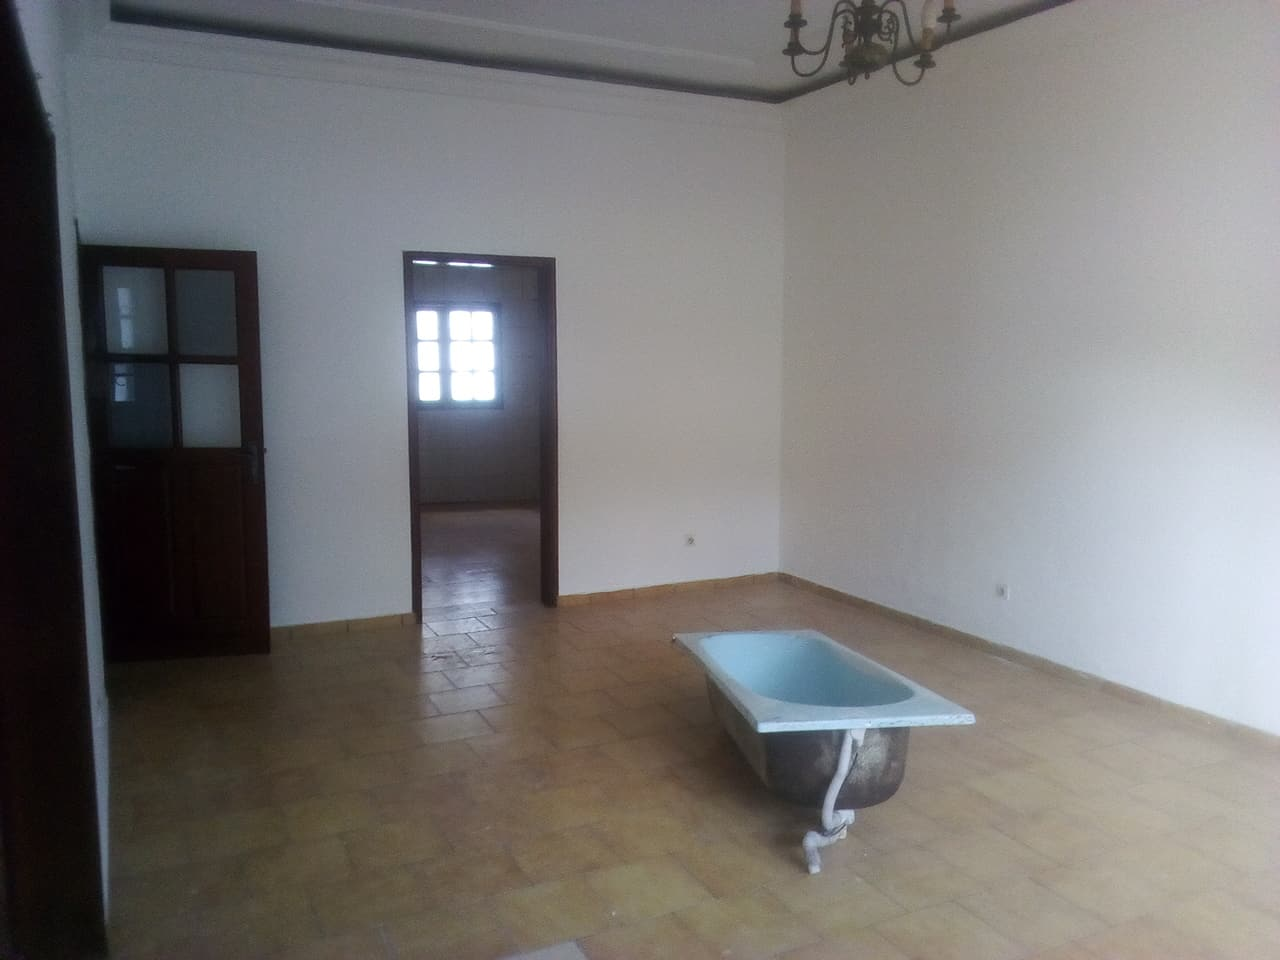 Office to rent at Yaoundé, Bastos, pas loin de dovv -  m2 - 800 000 FCFA